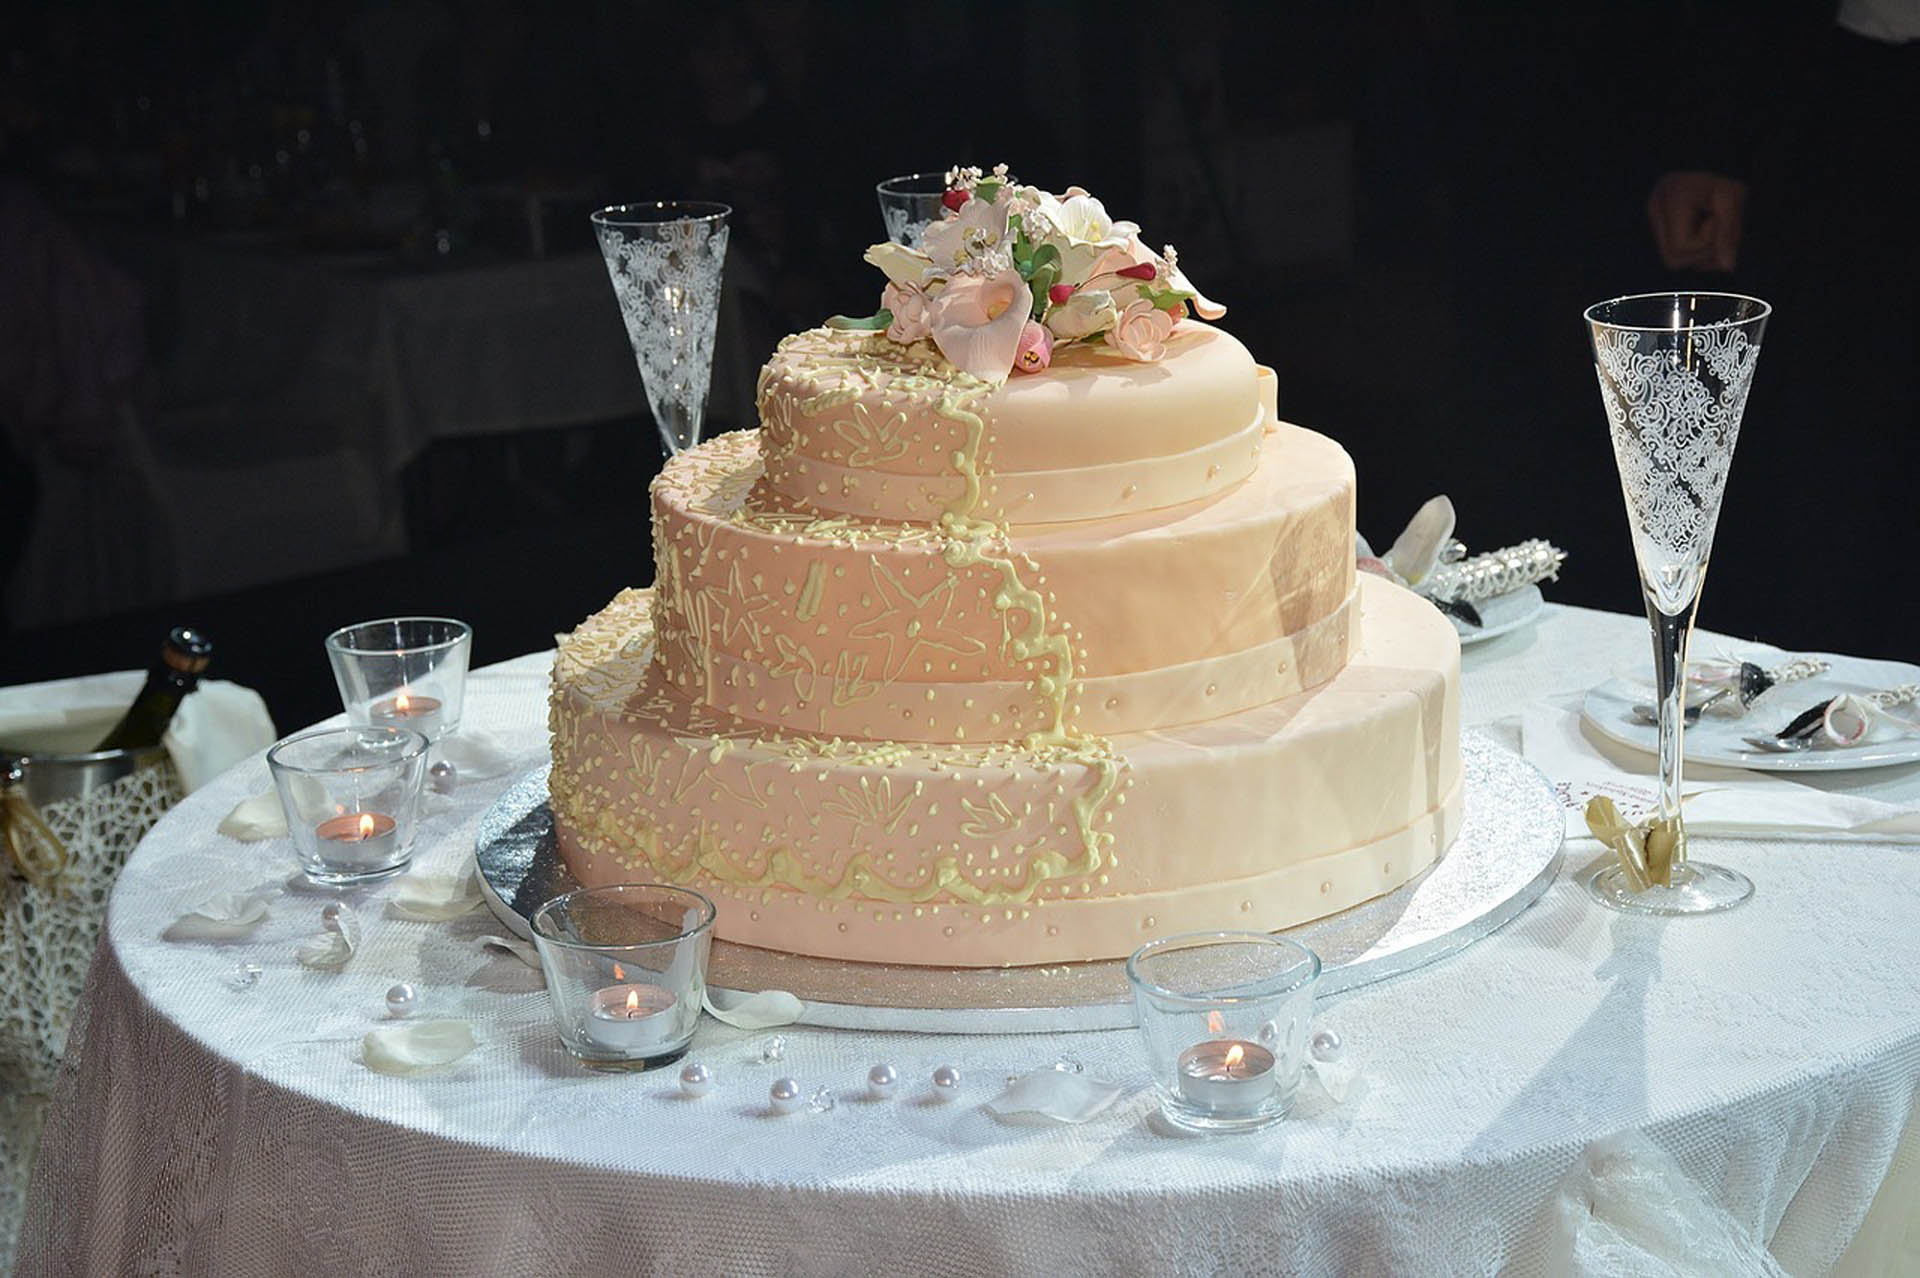 Wedding cake on table slide - 24